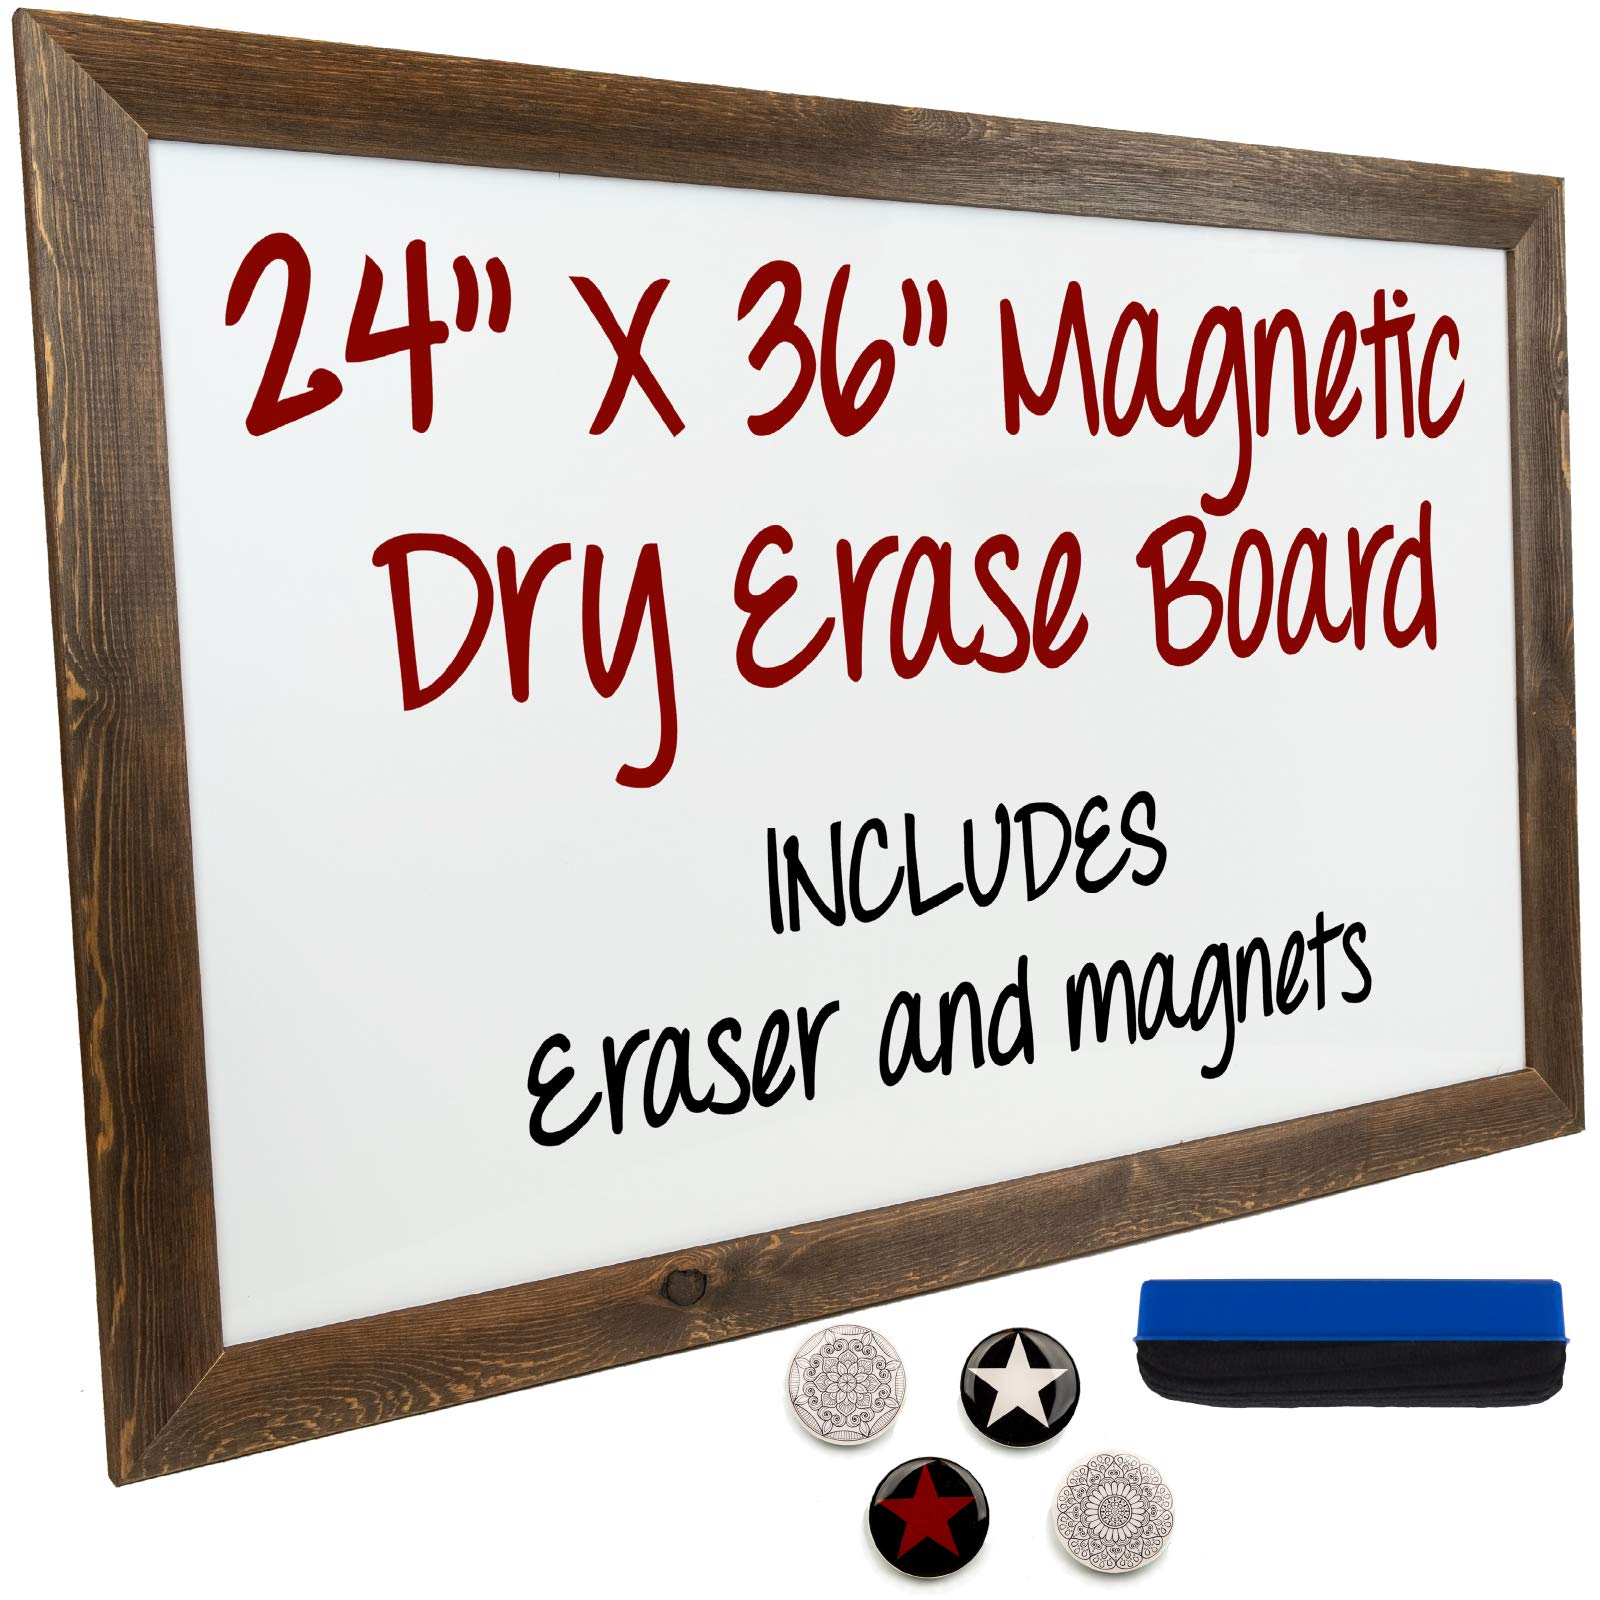 Dry Erase Magnetic White Board with Rustic Wooden Frame for Home, School, Office - 24''x36'' by Excello Global Products